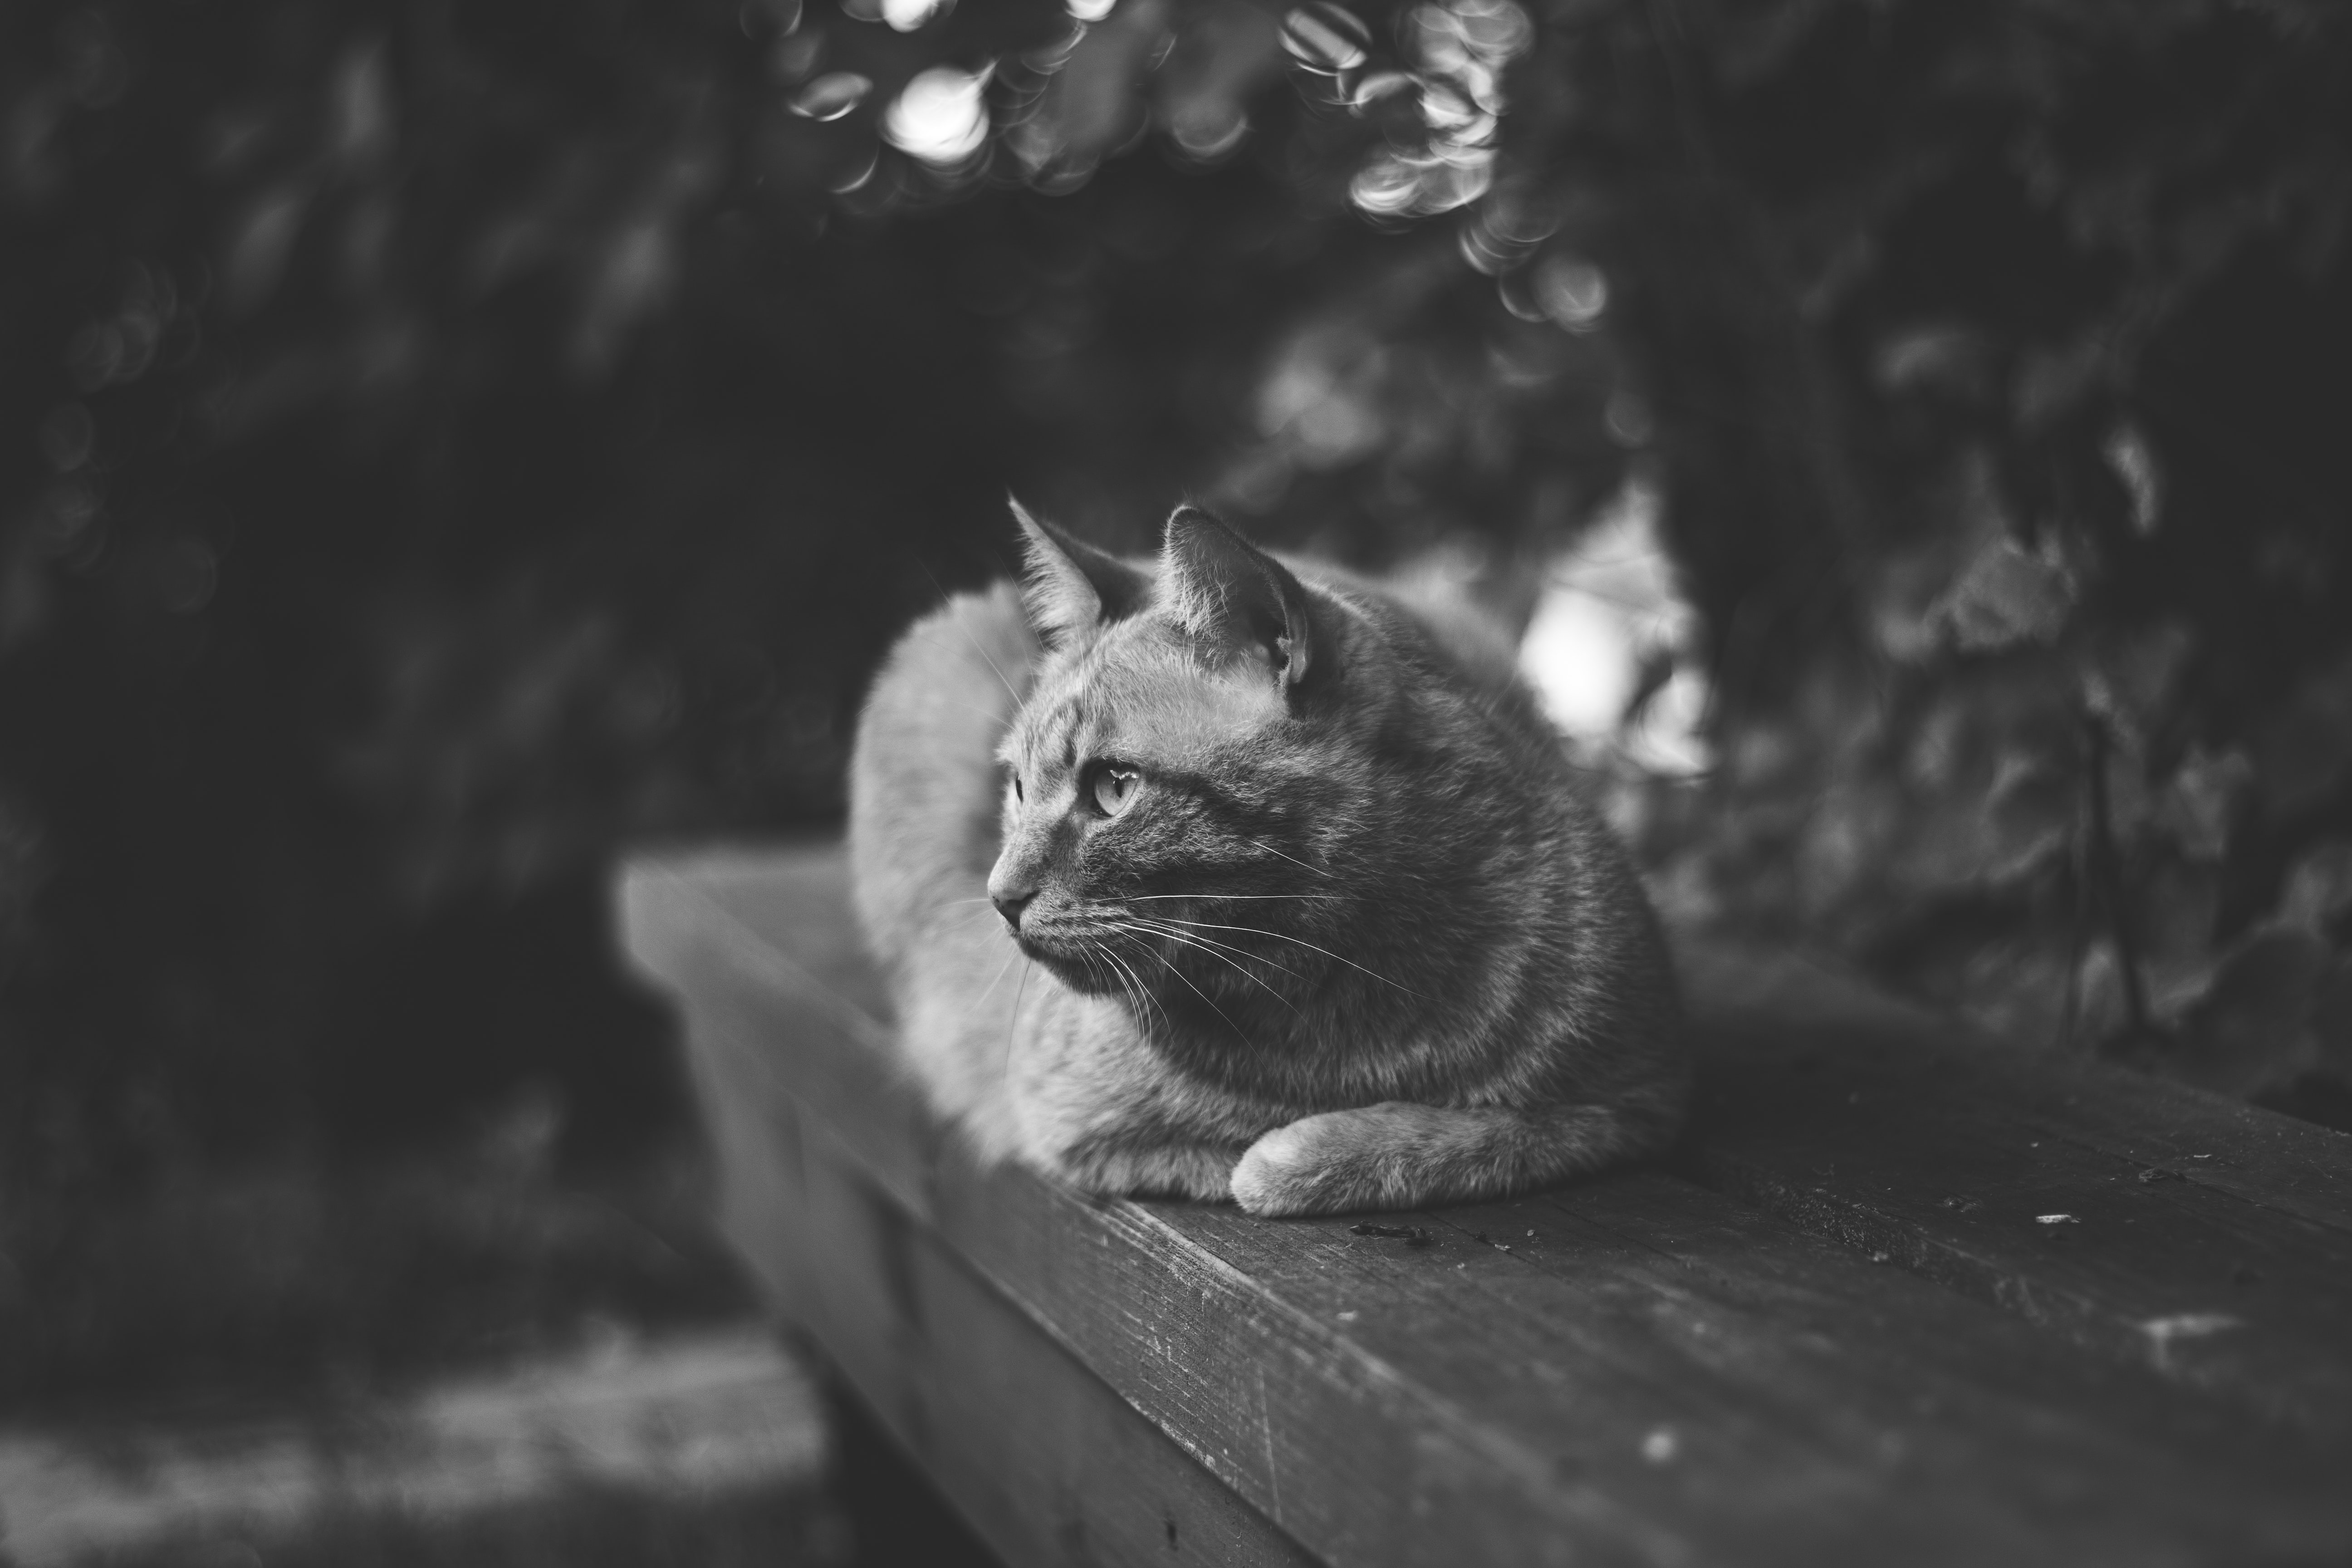 Black and white shot of domestic cat sitting on bench with trees in background